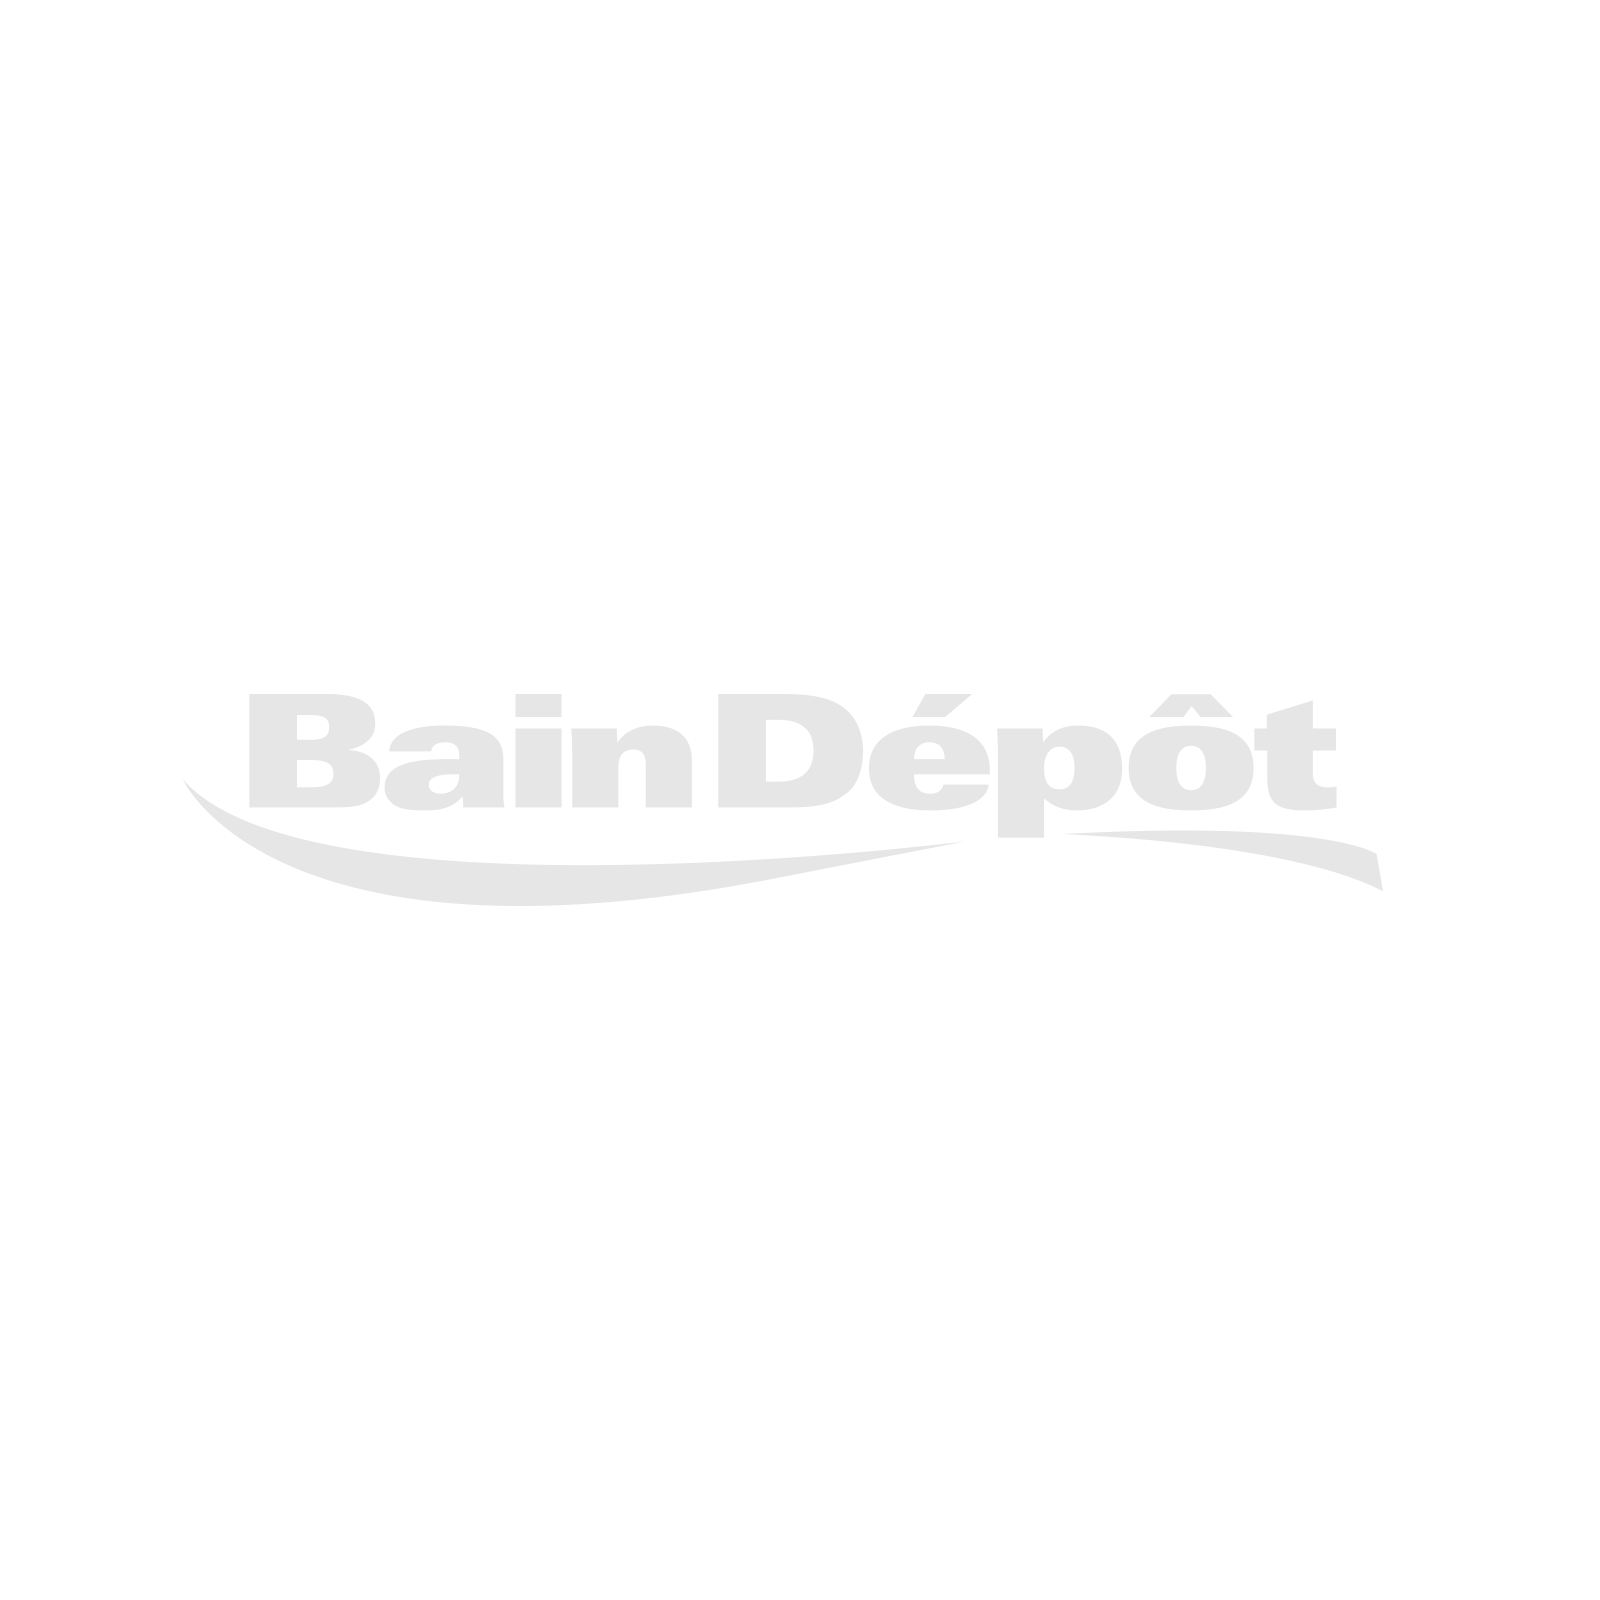 Bamboo shower stool